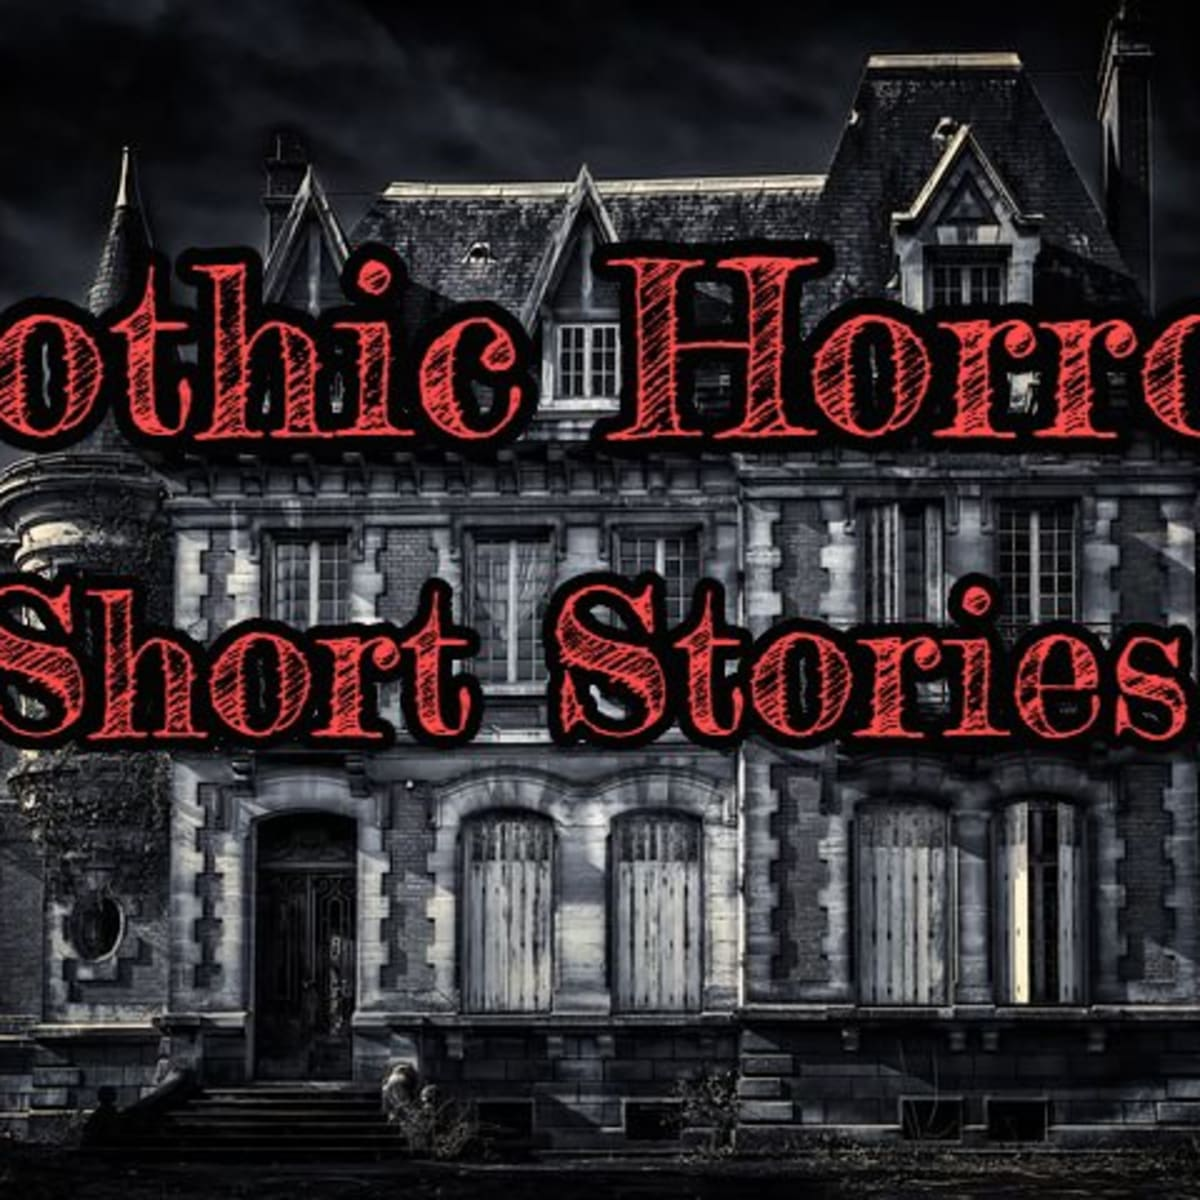 Short Horror Stories Scary Gothic Fiction Online Owlcation Education Fixit), a really nice action game sold in 1990 for dos, is available and ready to be played again! short horror stories scary gothic